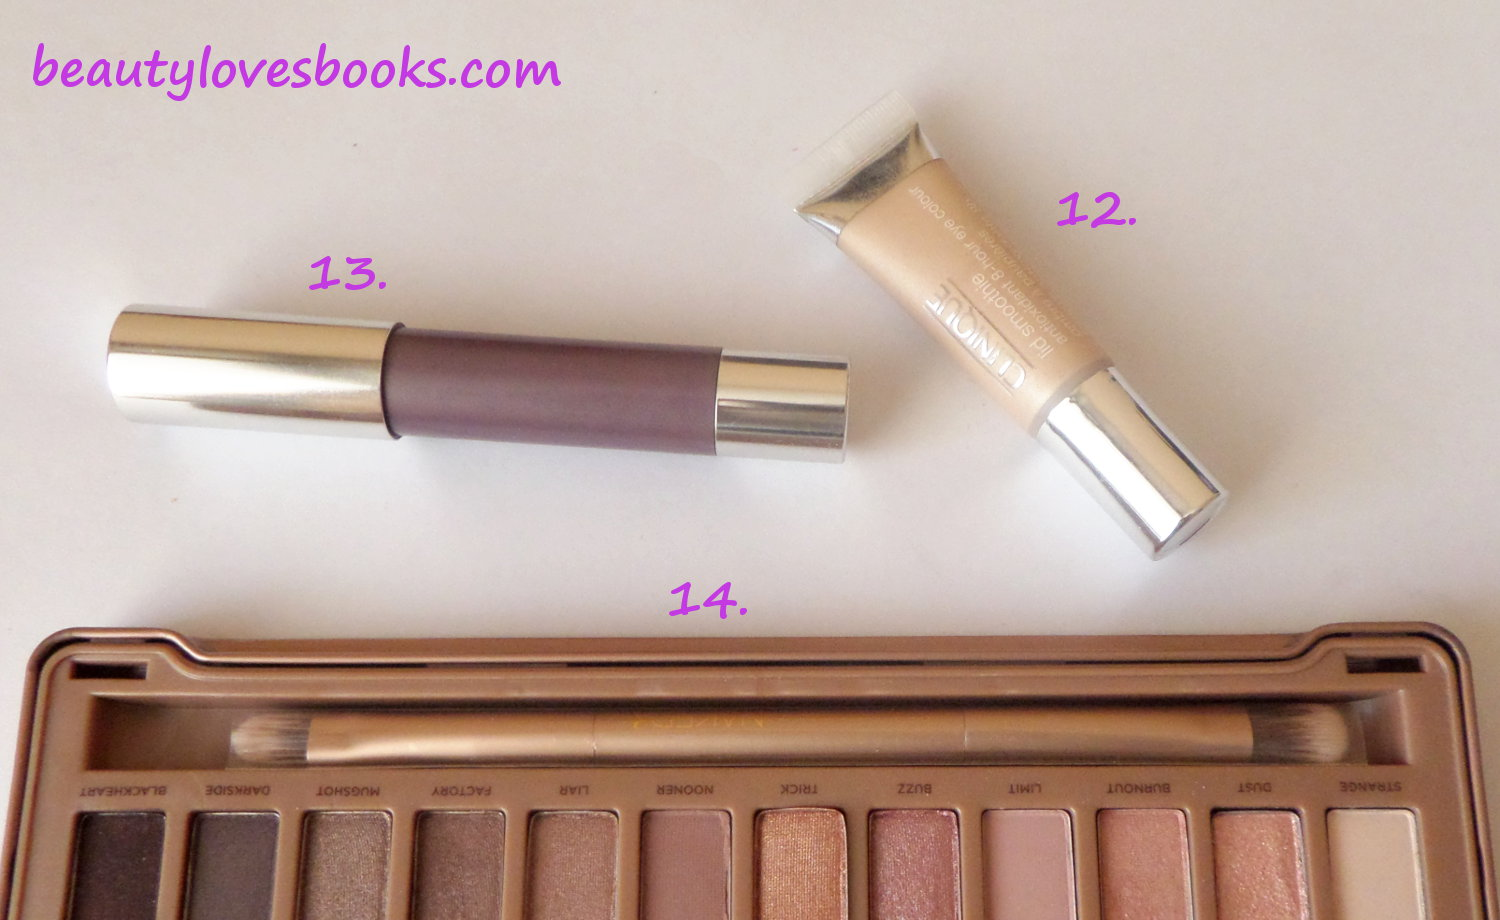 Urban Decay Naked 3 palette, Clinique Lid smoothie, Clinique Chubby stick for eyes